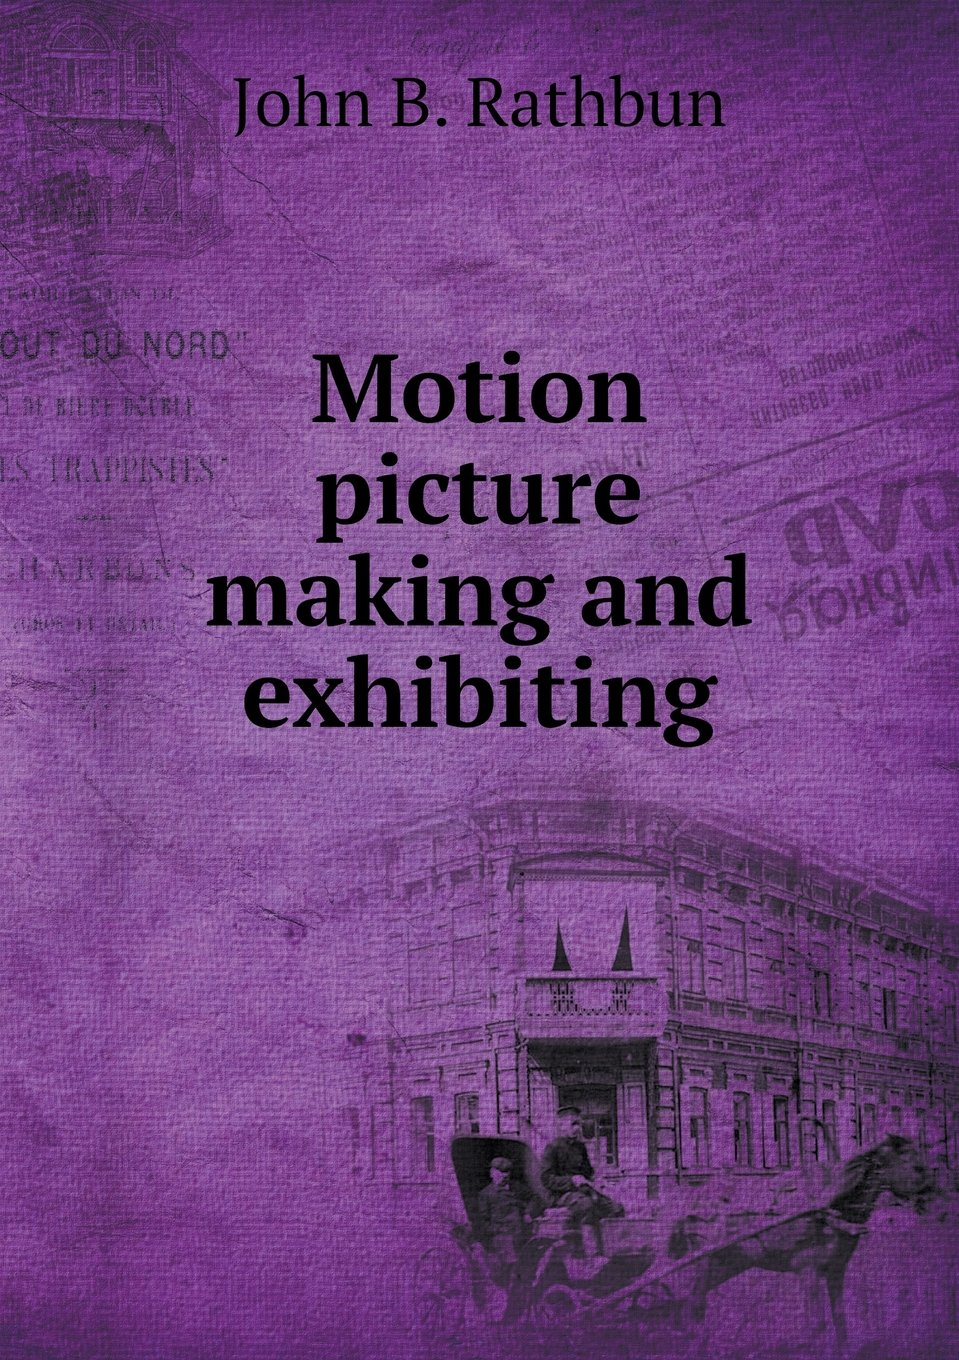 Motion picture making and exhibiting PDF